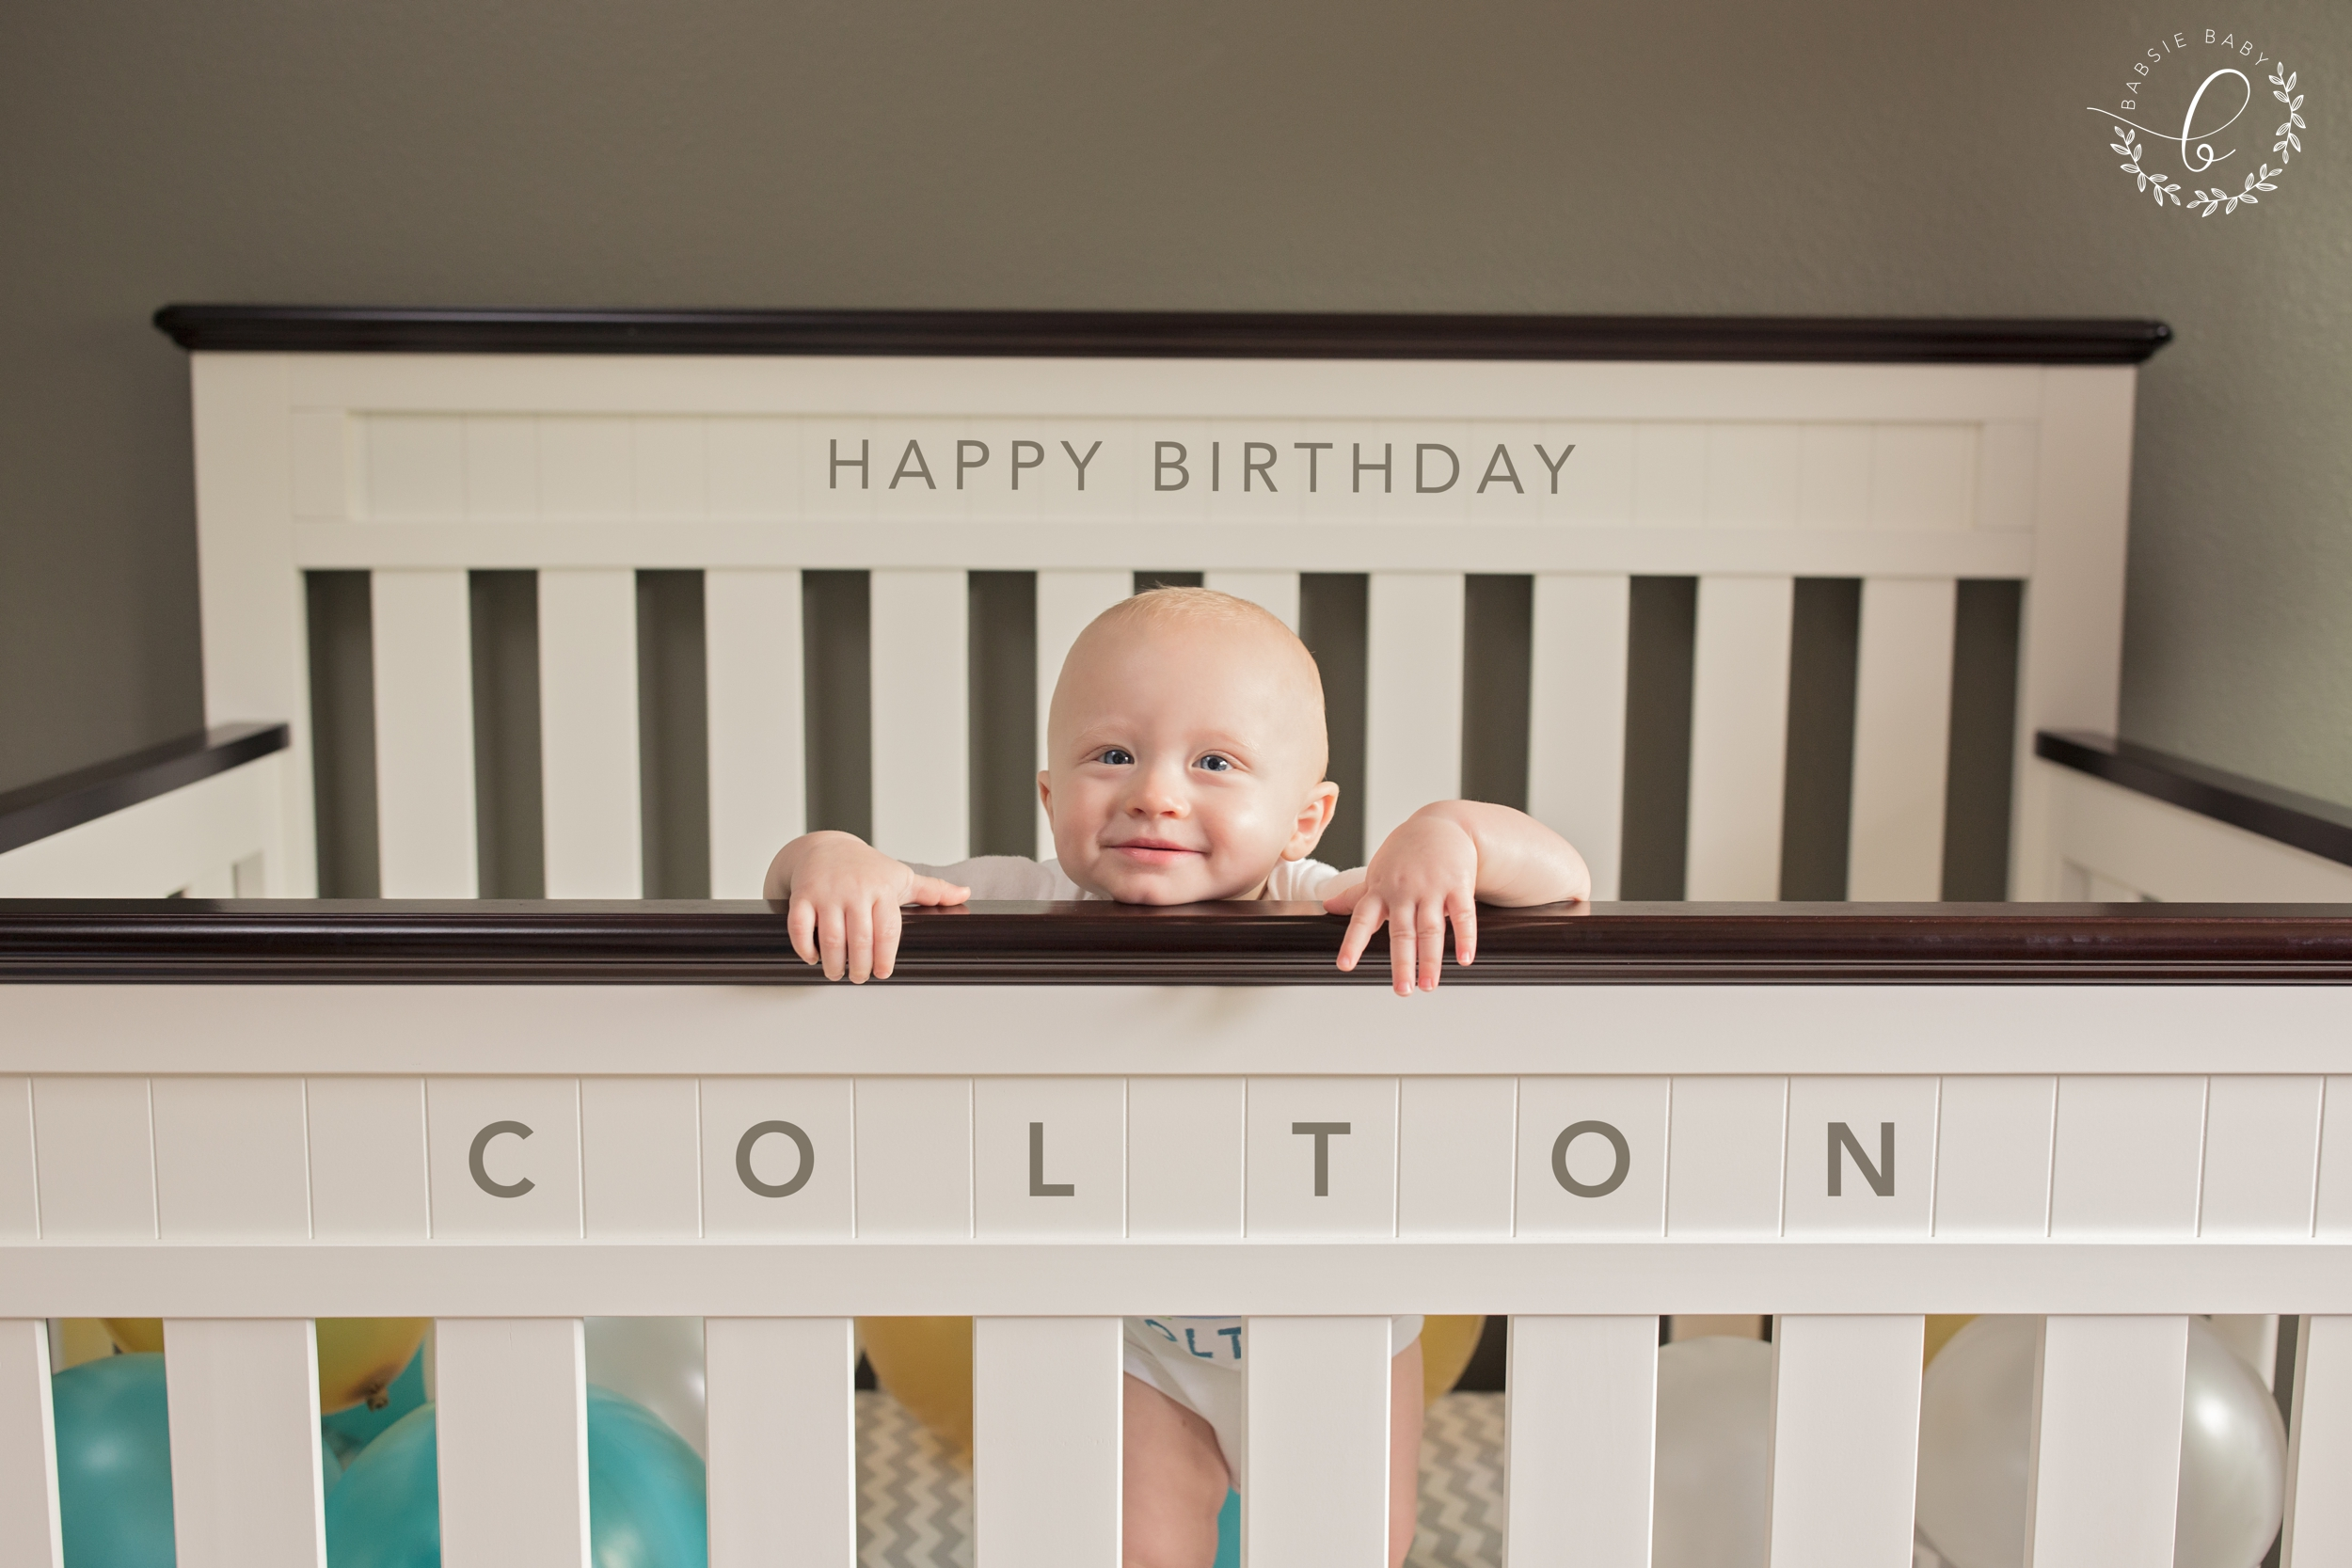 Babsie-Baby-Photography-Colton-1-Year-Old-Birthday-San-Diego-Oceanside-California-001.JPG